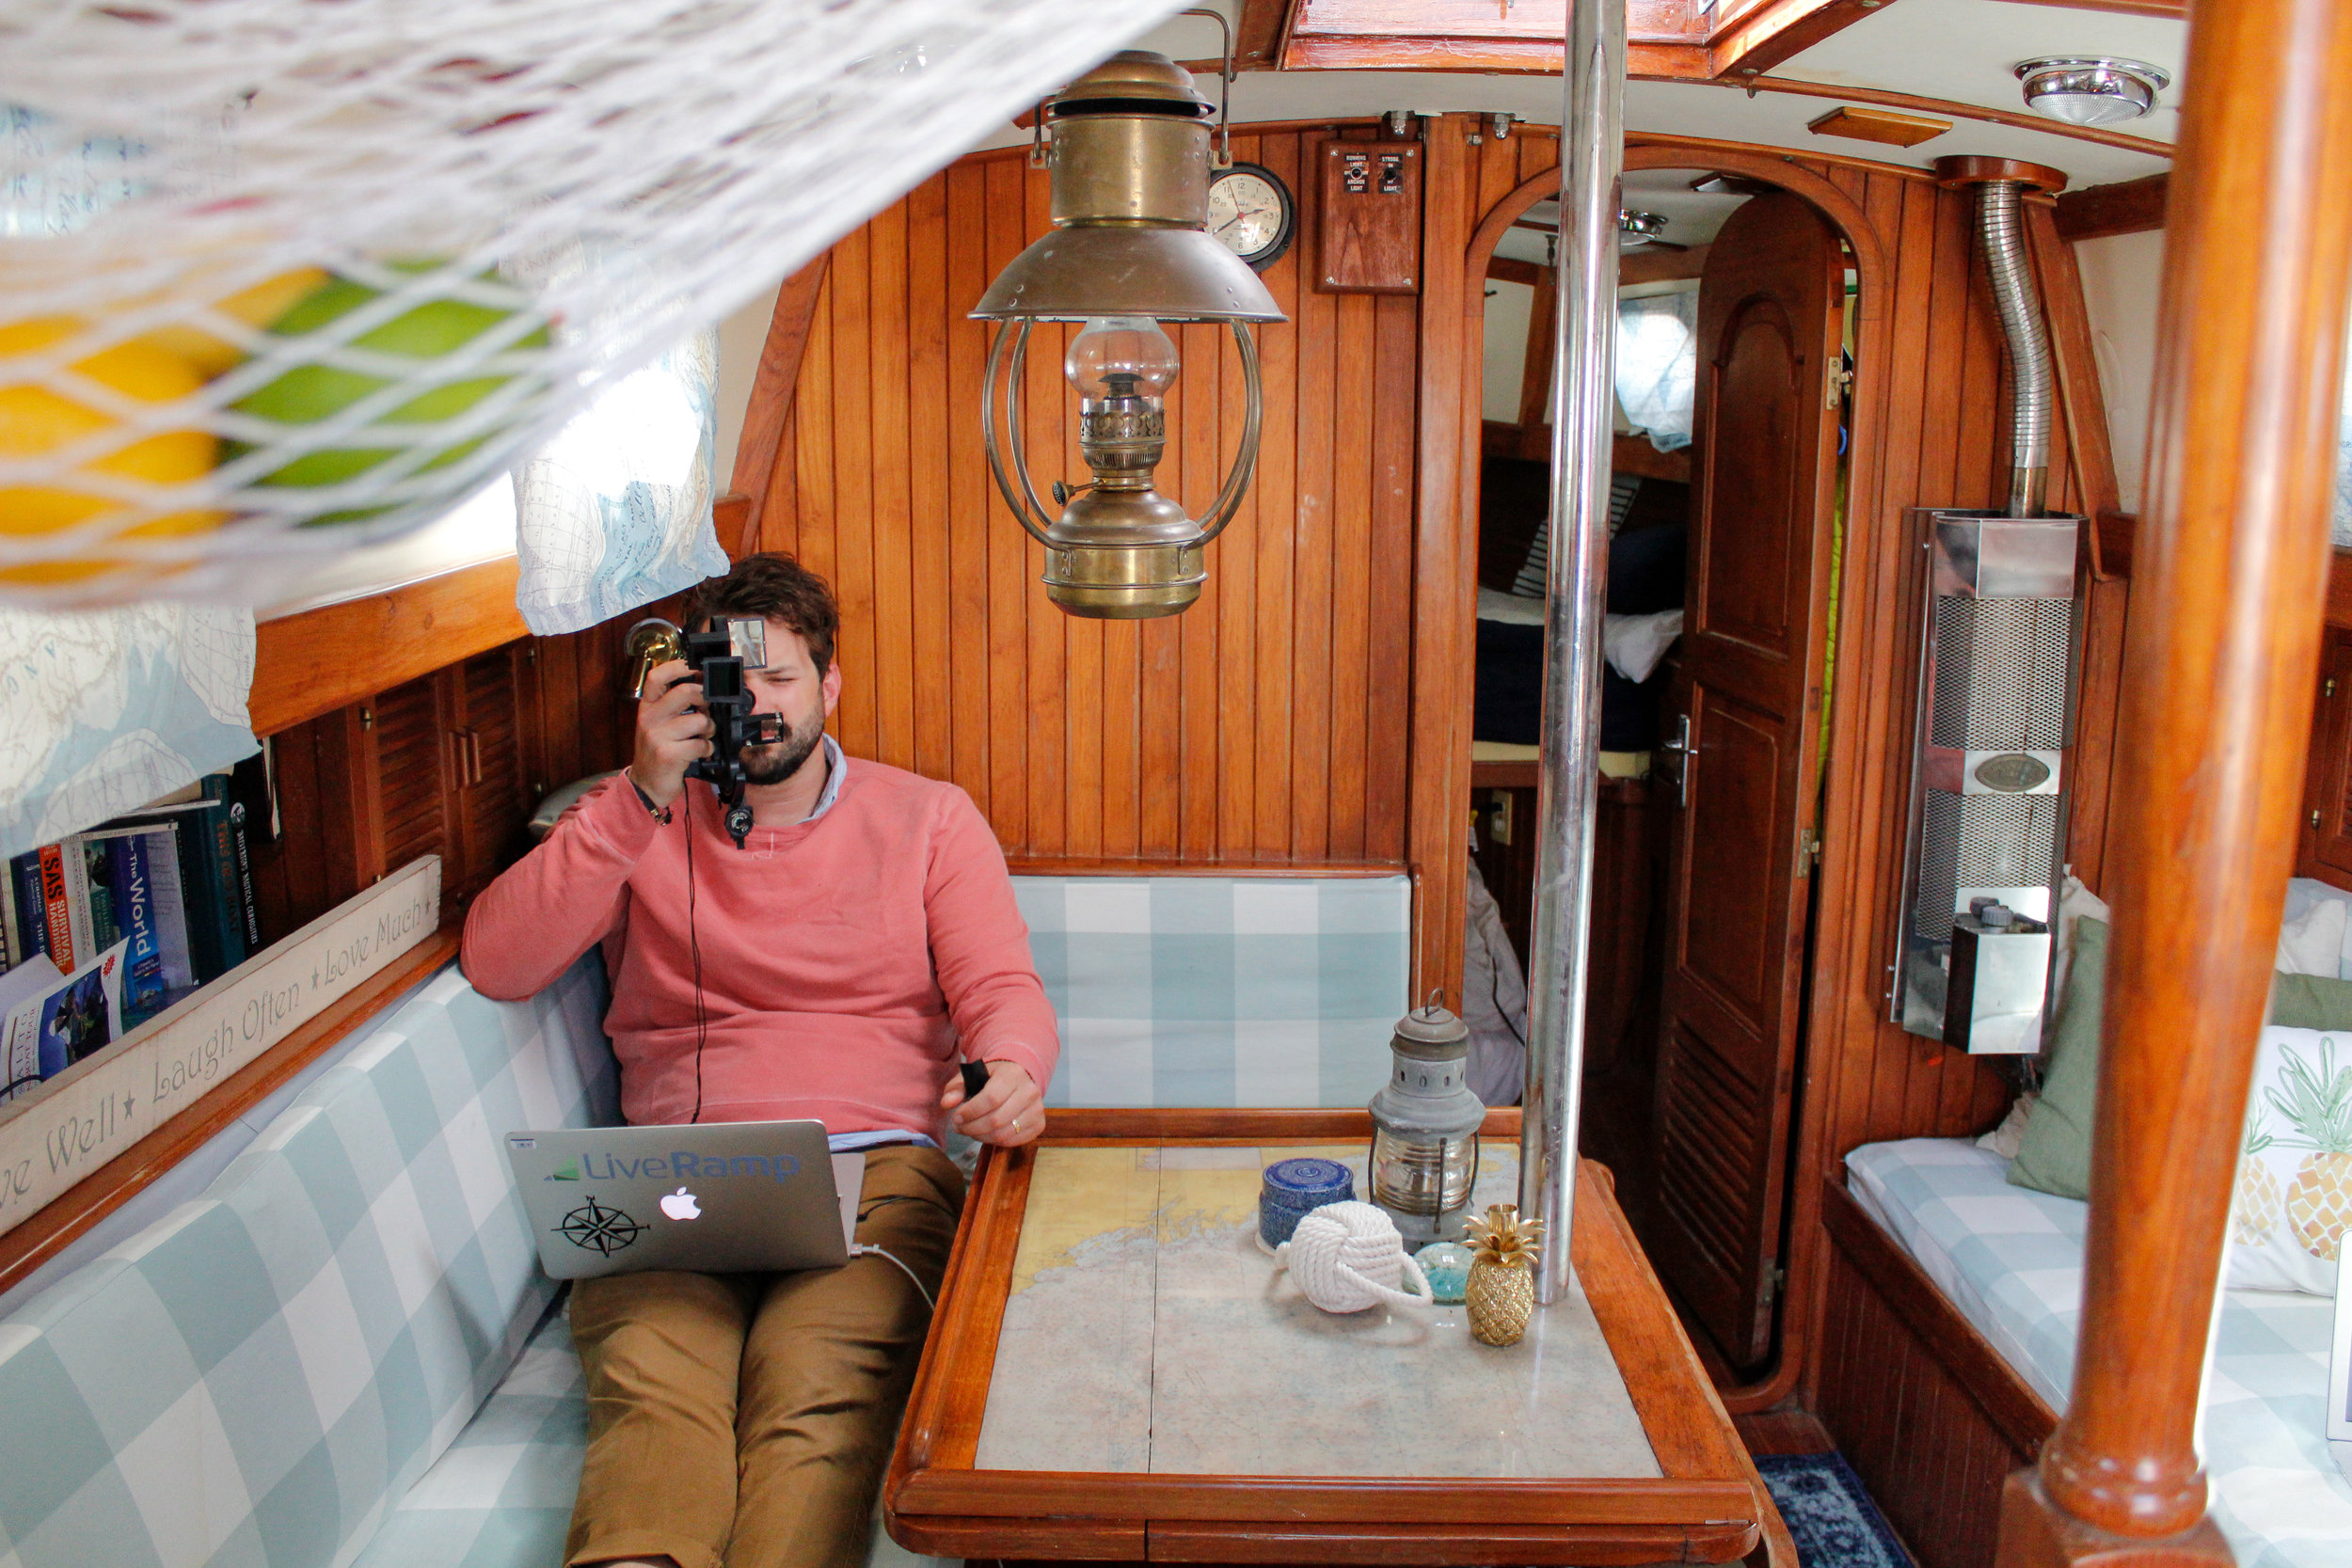 blog about living on a sailboat!